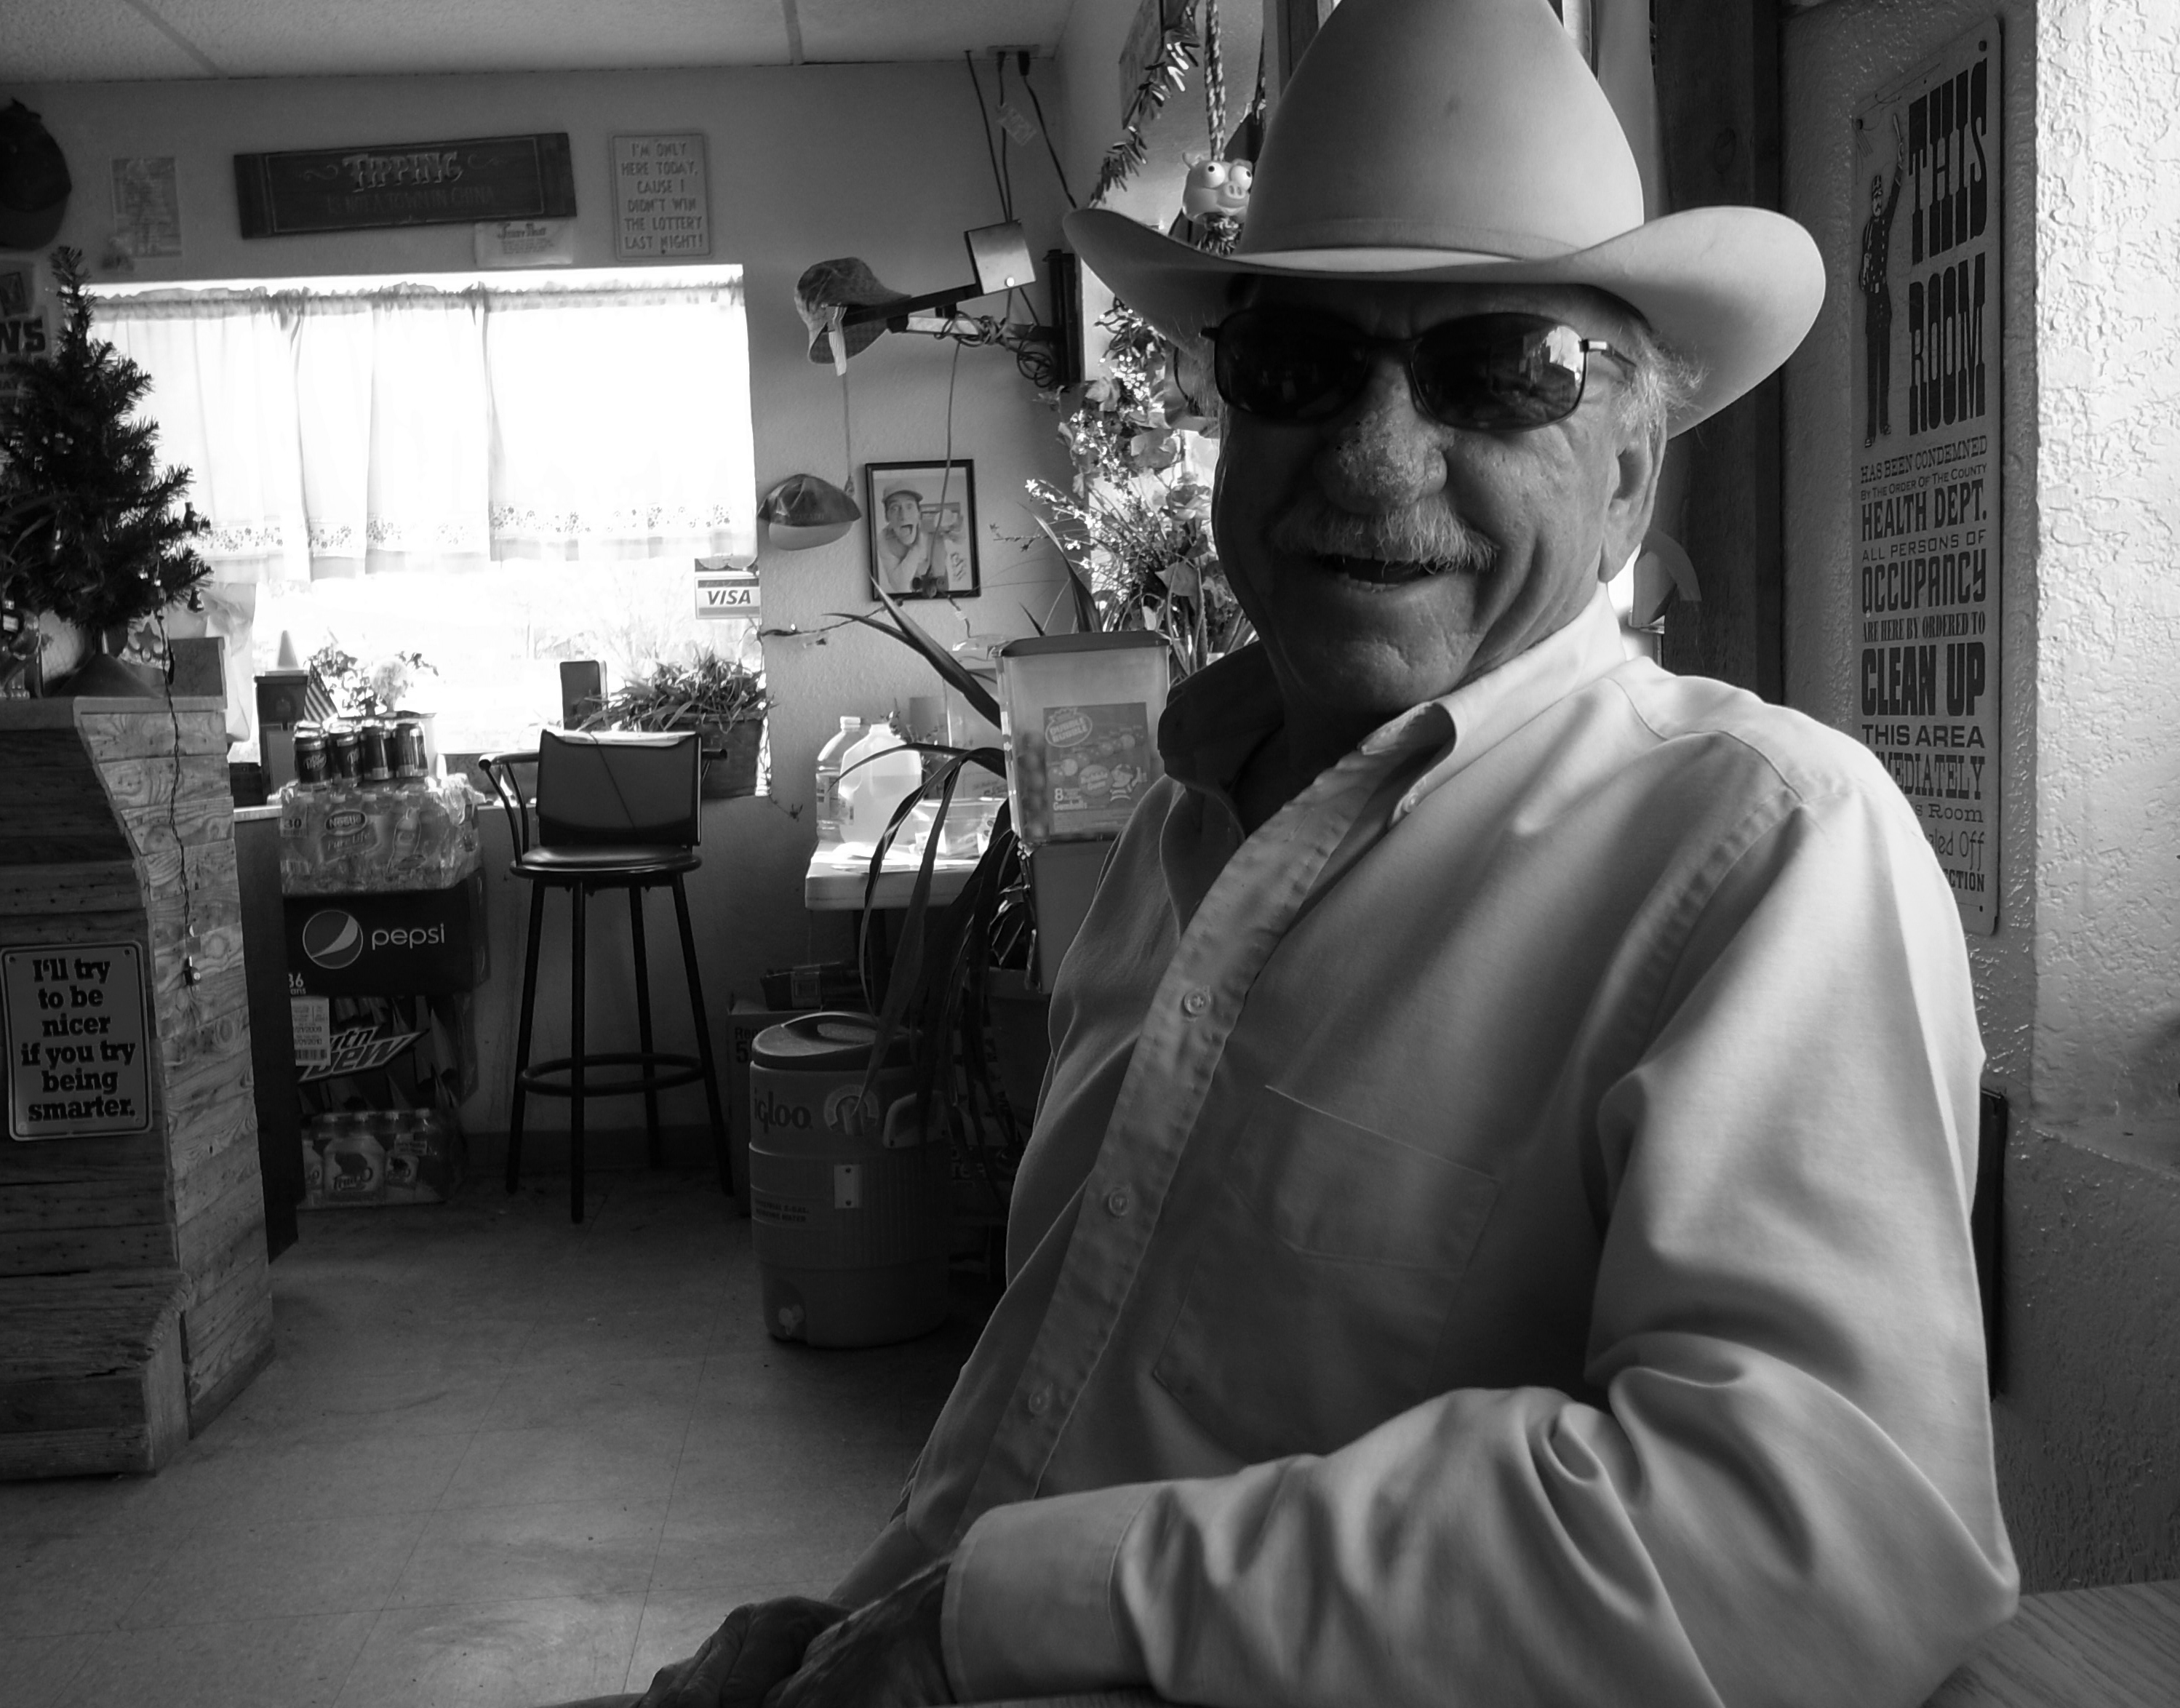 An older man in sunglasses and a cowboy hat smiles inside a cafe